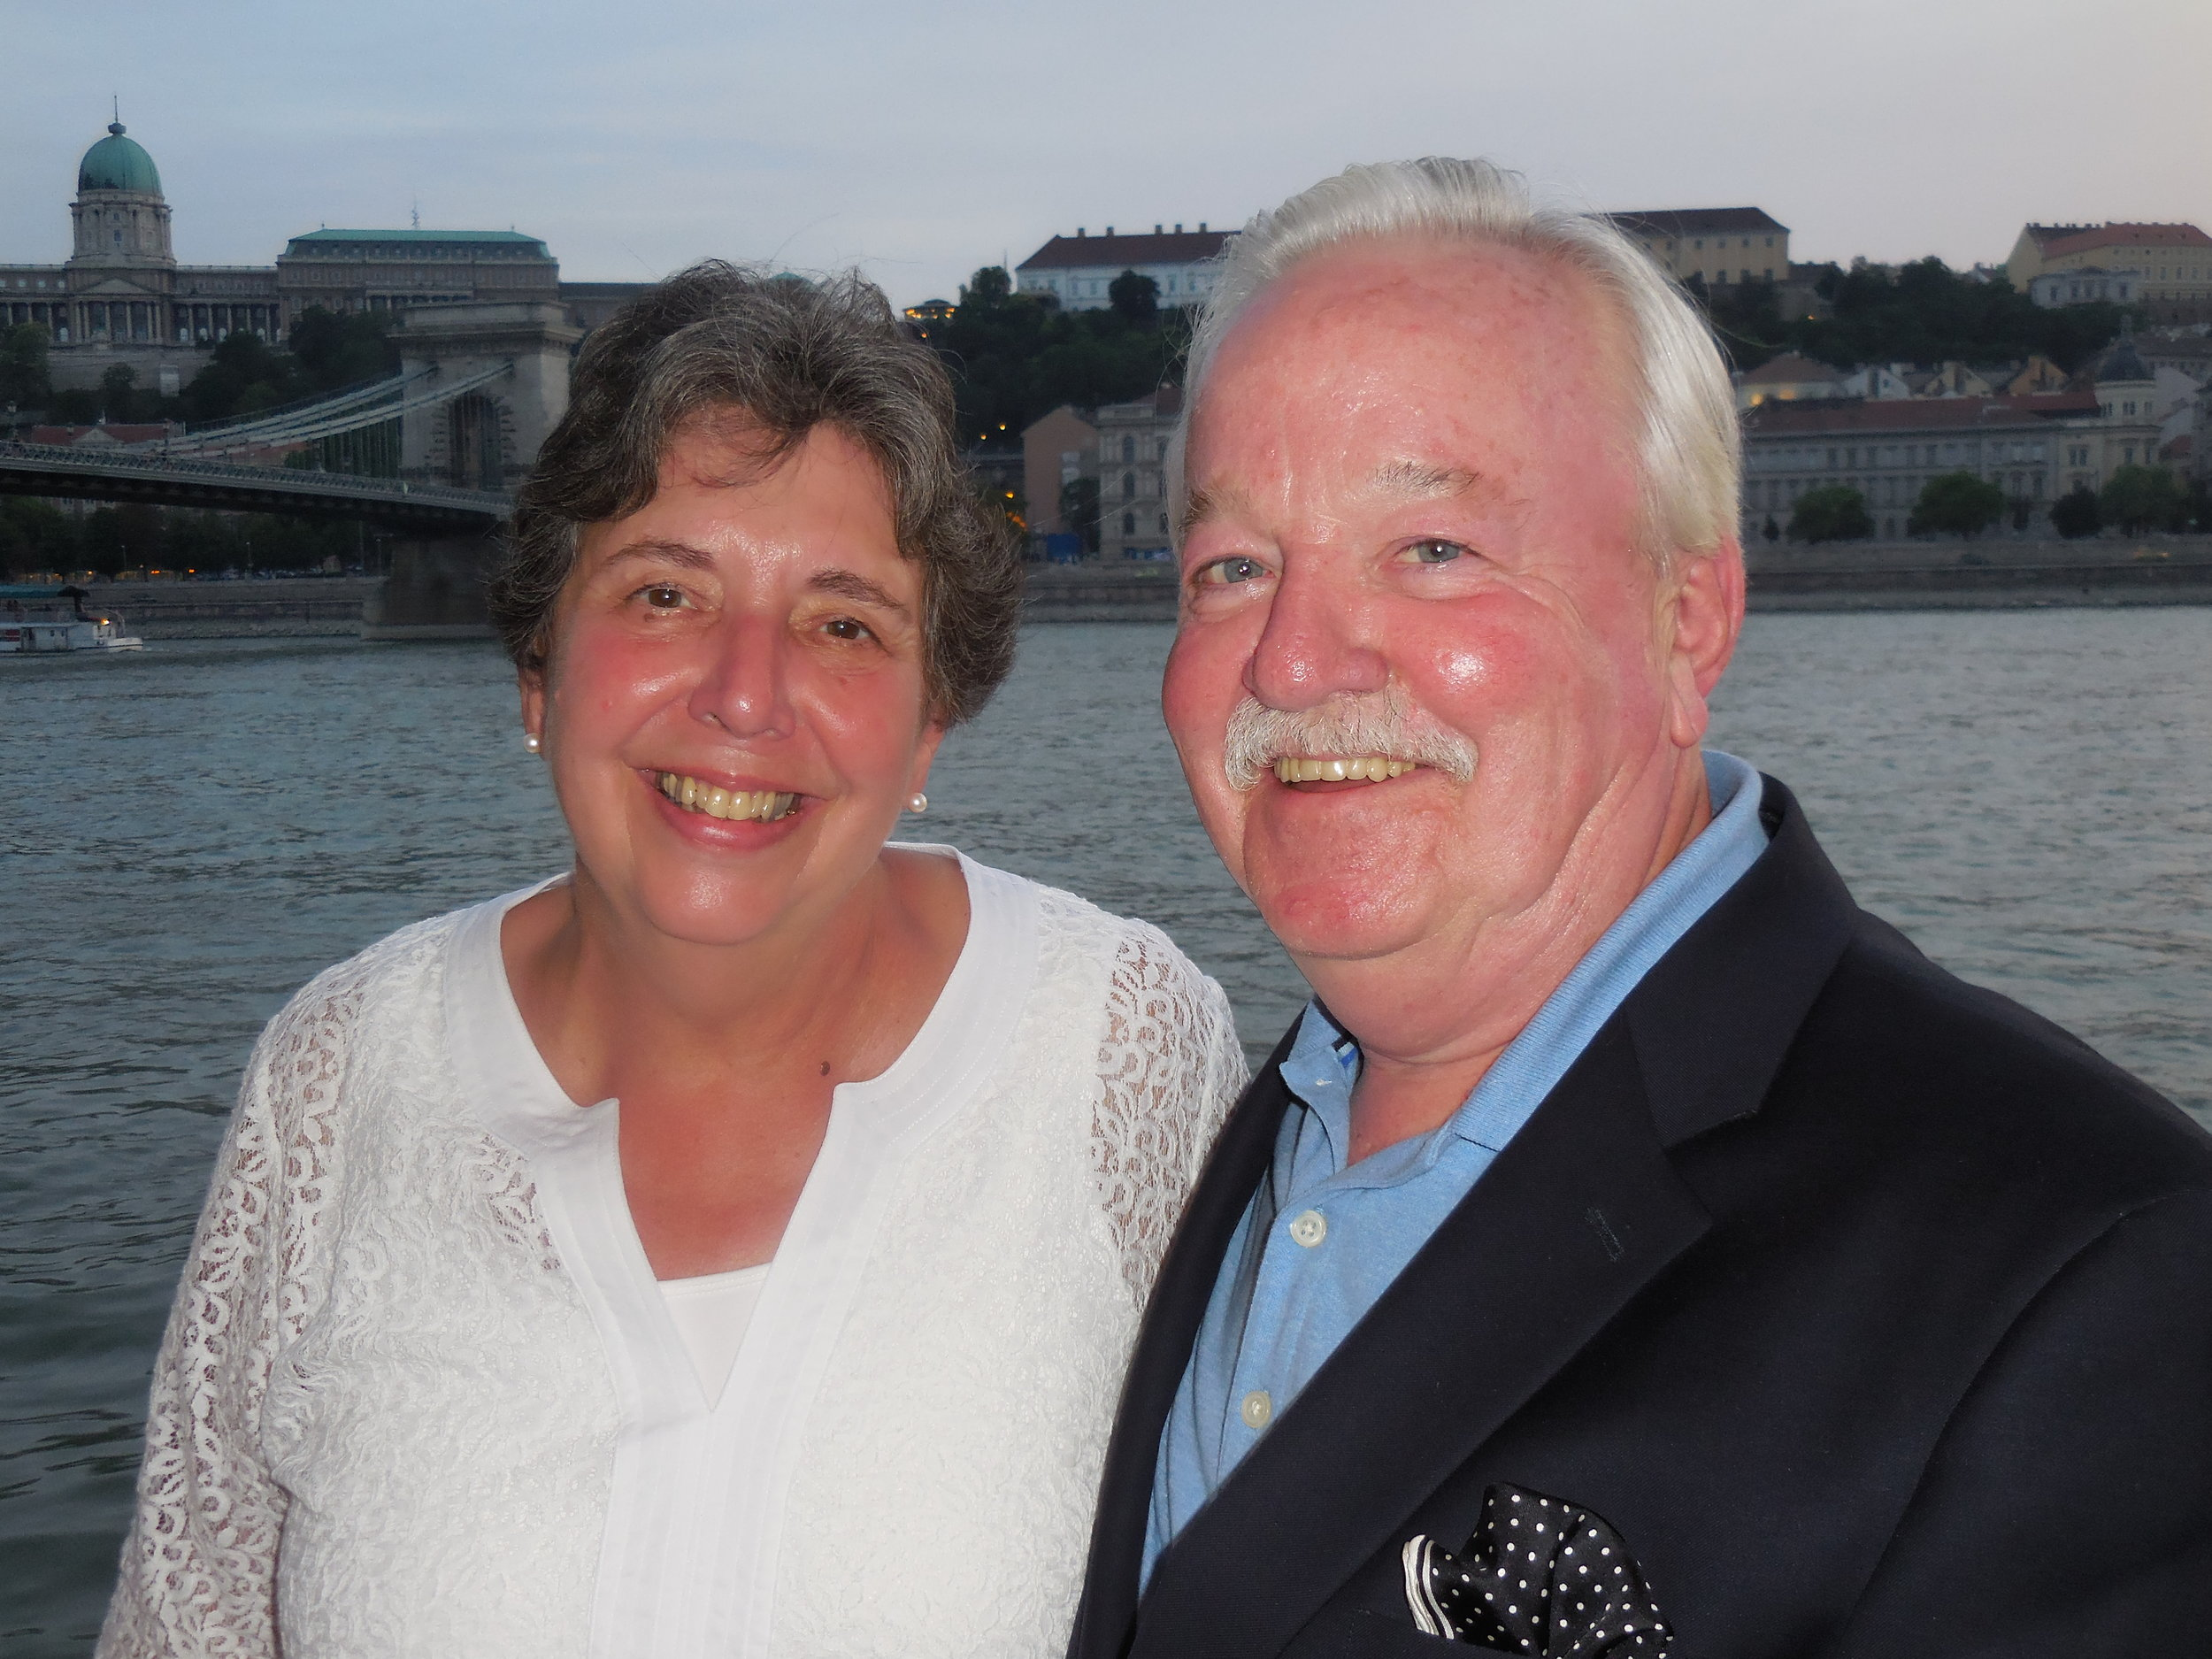 Kathie and Jim O'Brien on the Danube River on Viking River Cruise of Europe in mid-July 2015.